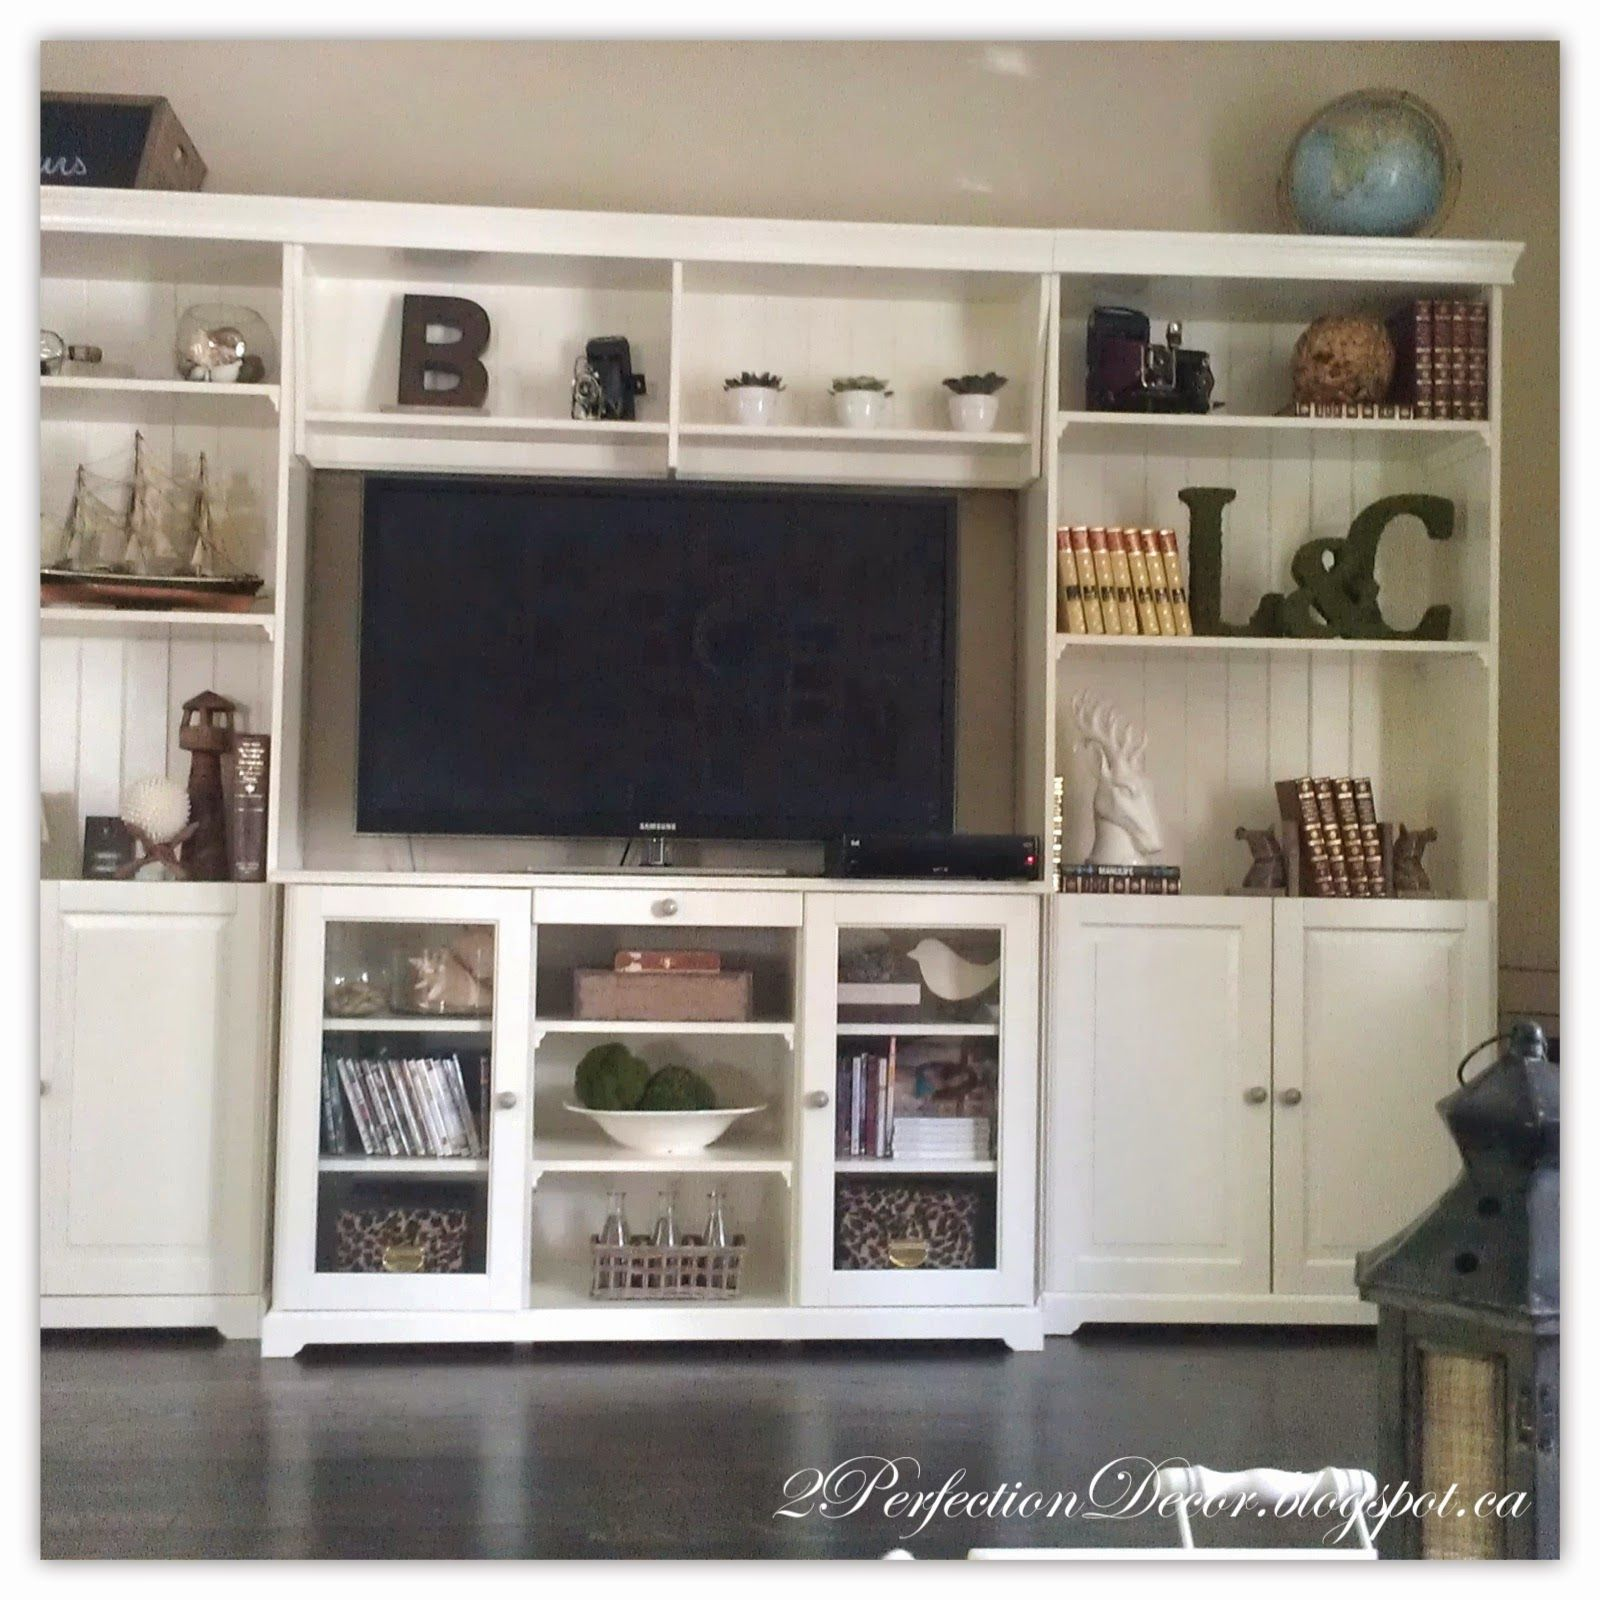 Inspirational Tv Cabinet with Bookshelves